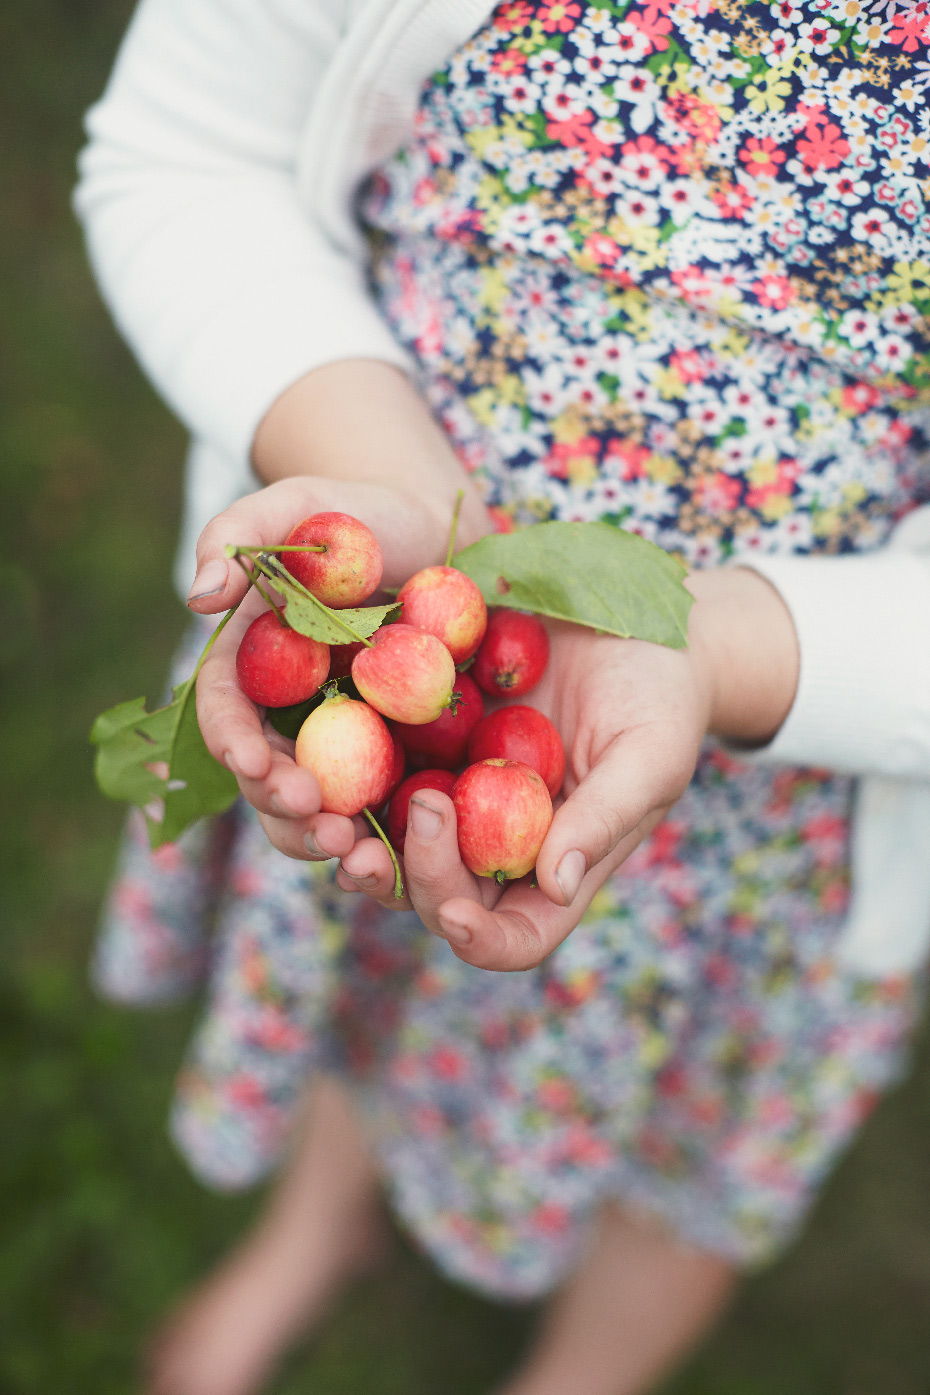 Stacey Van Berkel Photography I Young girl holding red crabapples in her hands with floral dress I Stewiacke, Nova Scotia, Canada I Canadian LIving Magazine